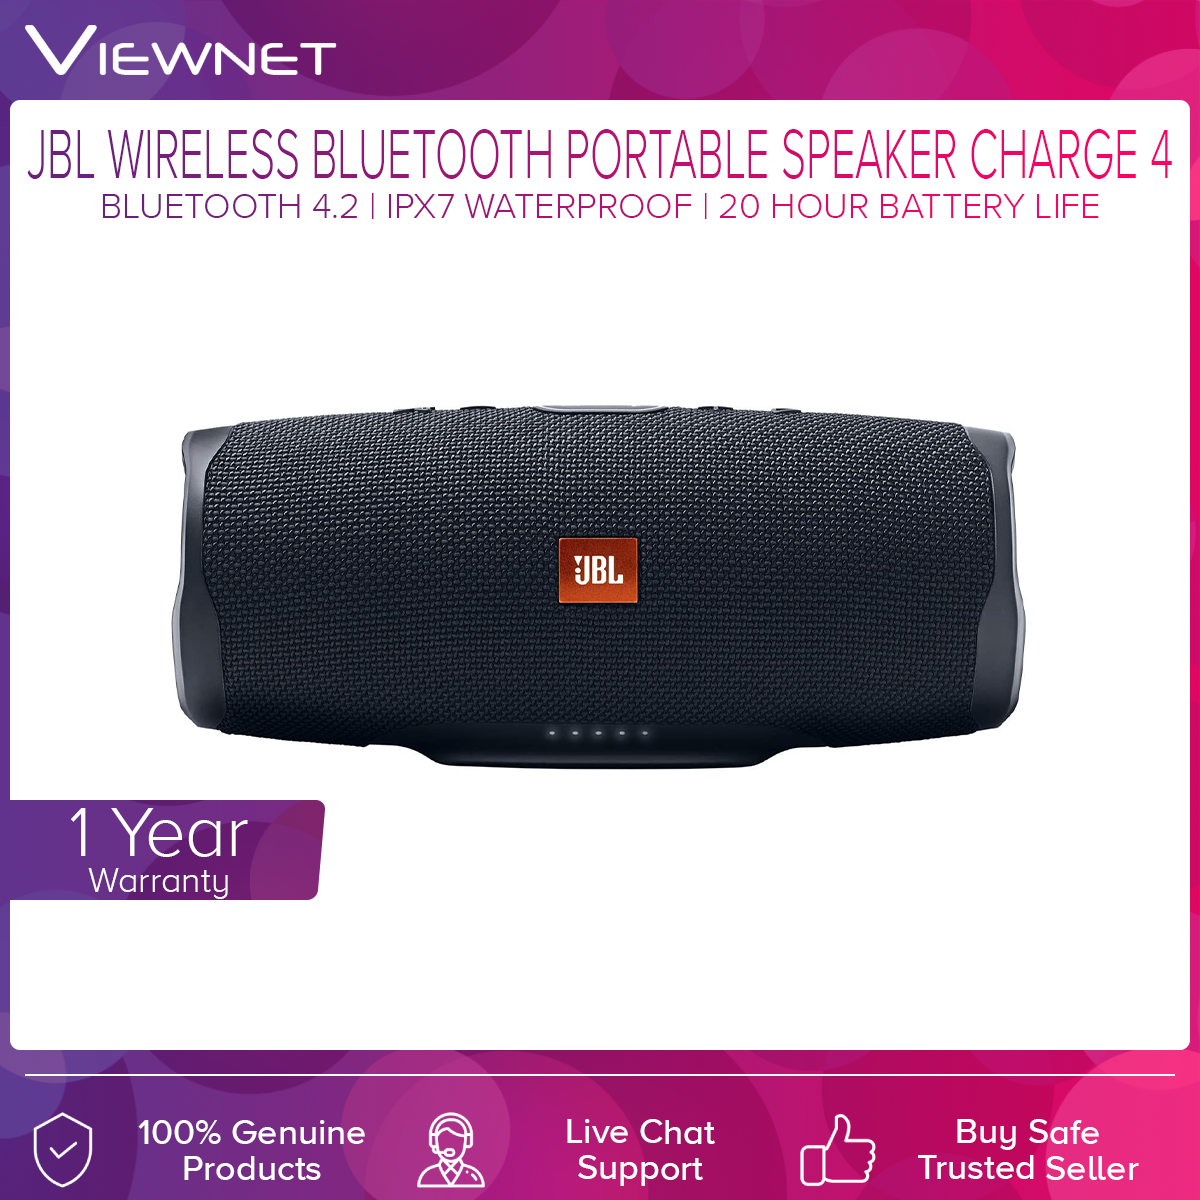 JBL Charge 4 Portable Bluetooth Speaker with Waterproof, Bass radiator, Durable fabric